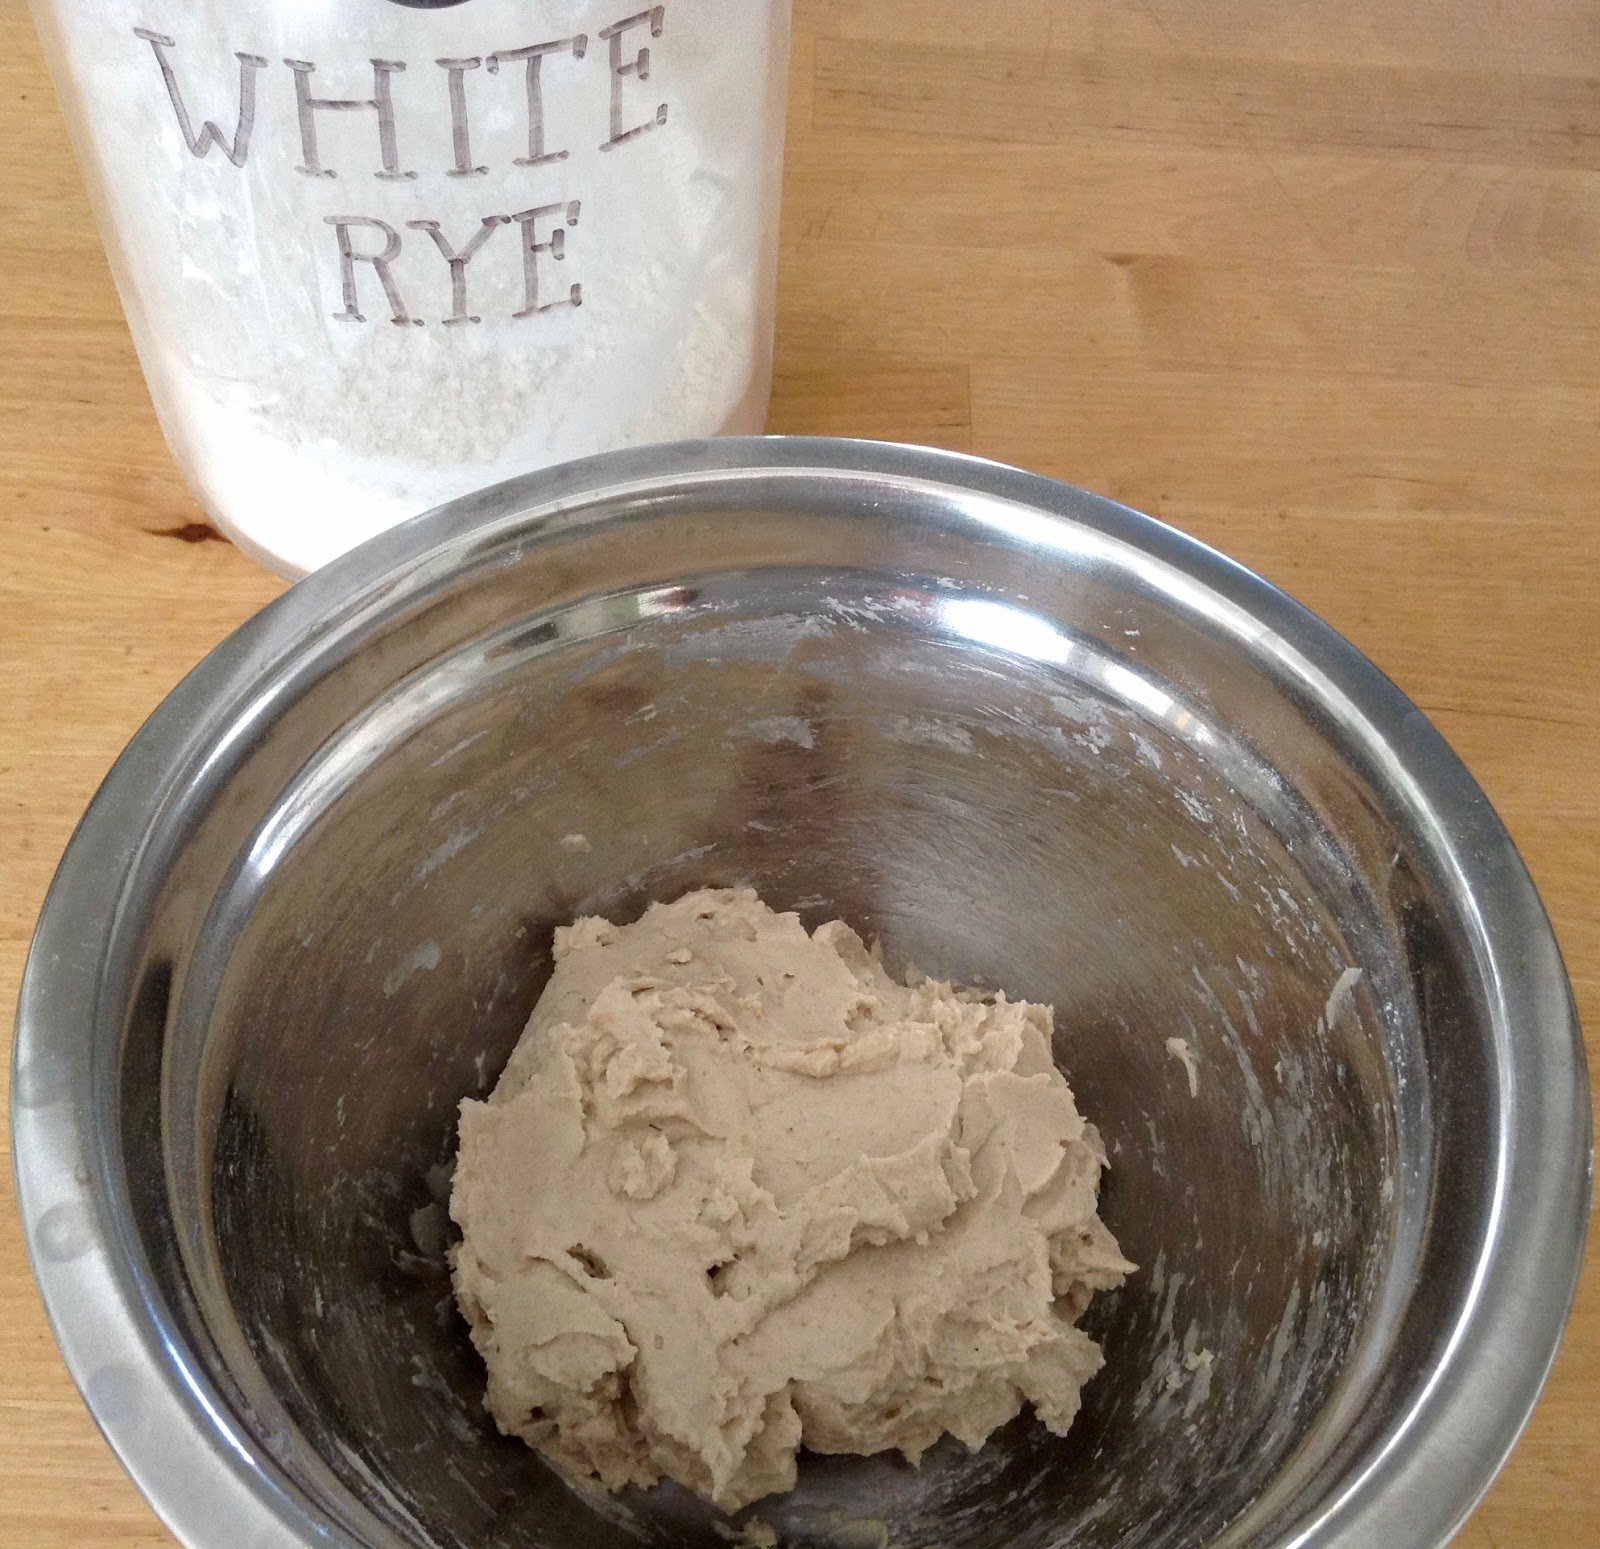 The rye starter is made with white rye